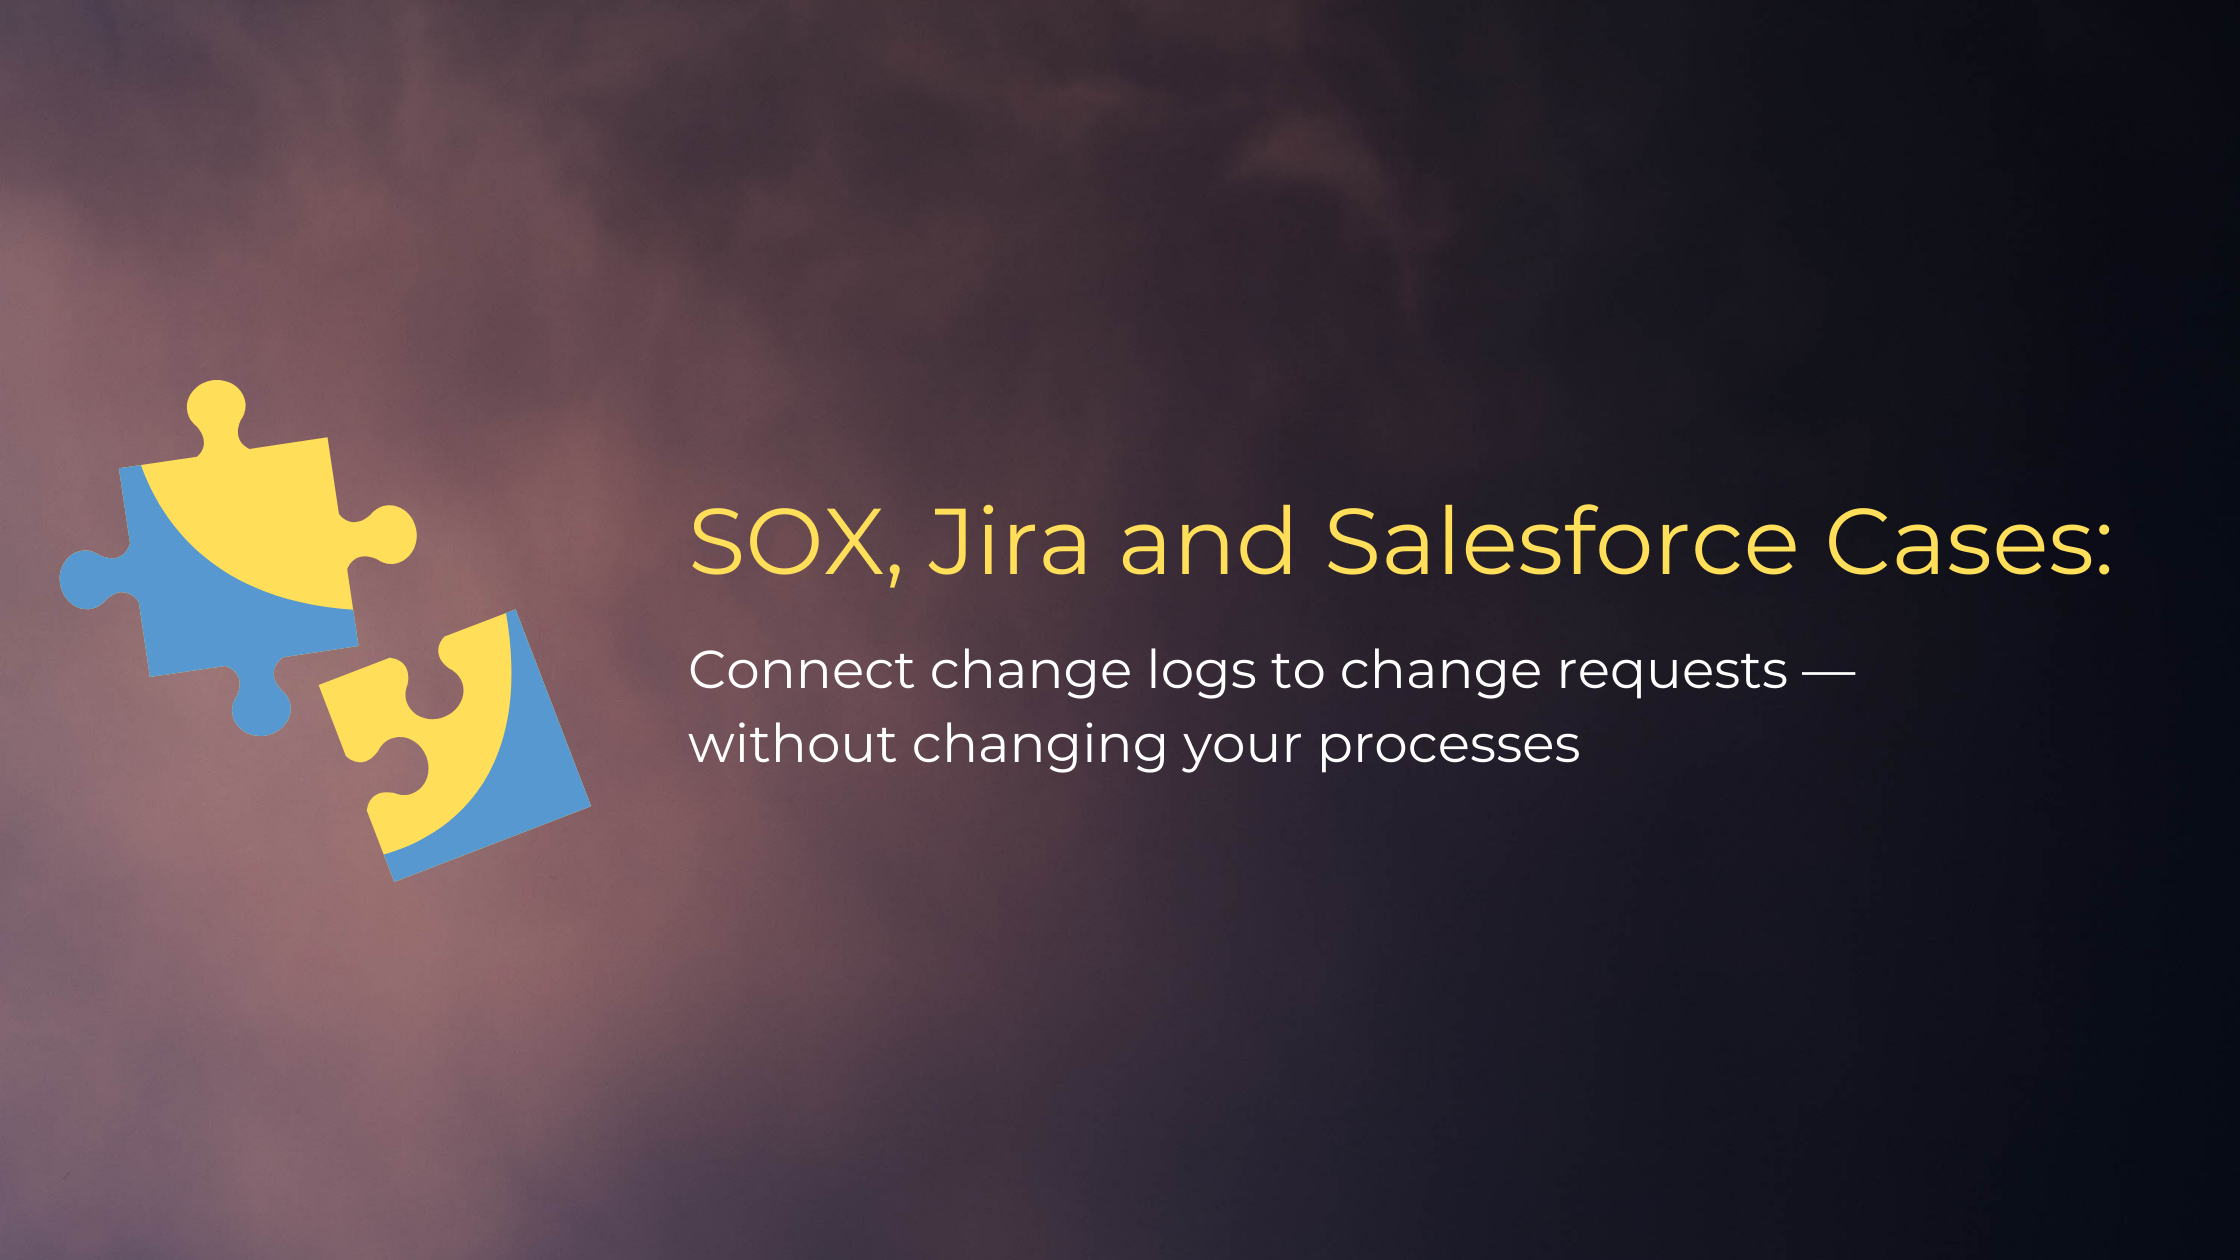 SOX, Jira and Salesforce Cases-3